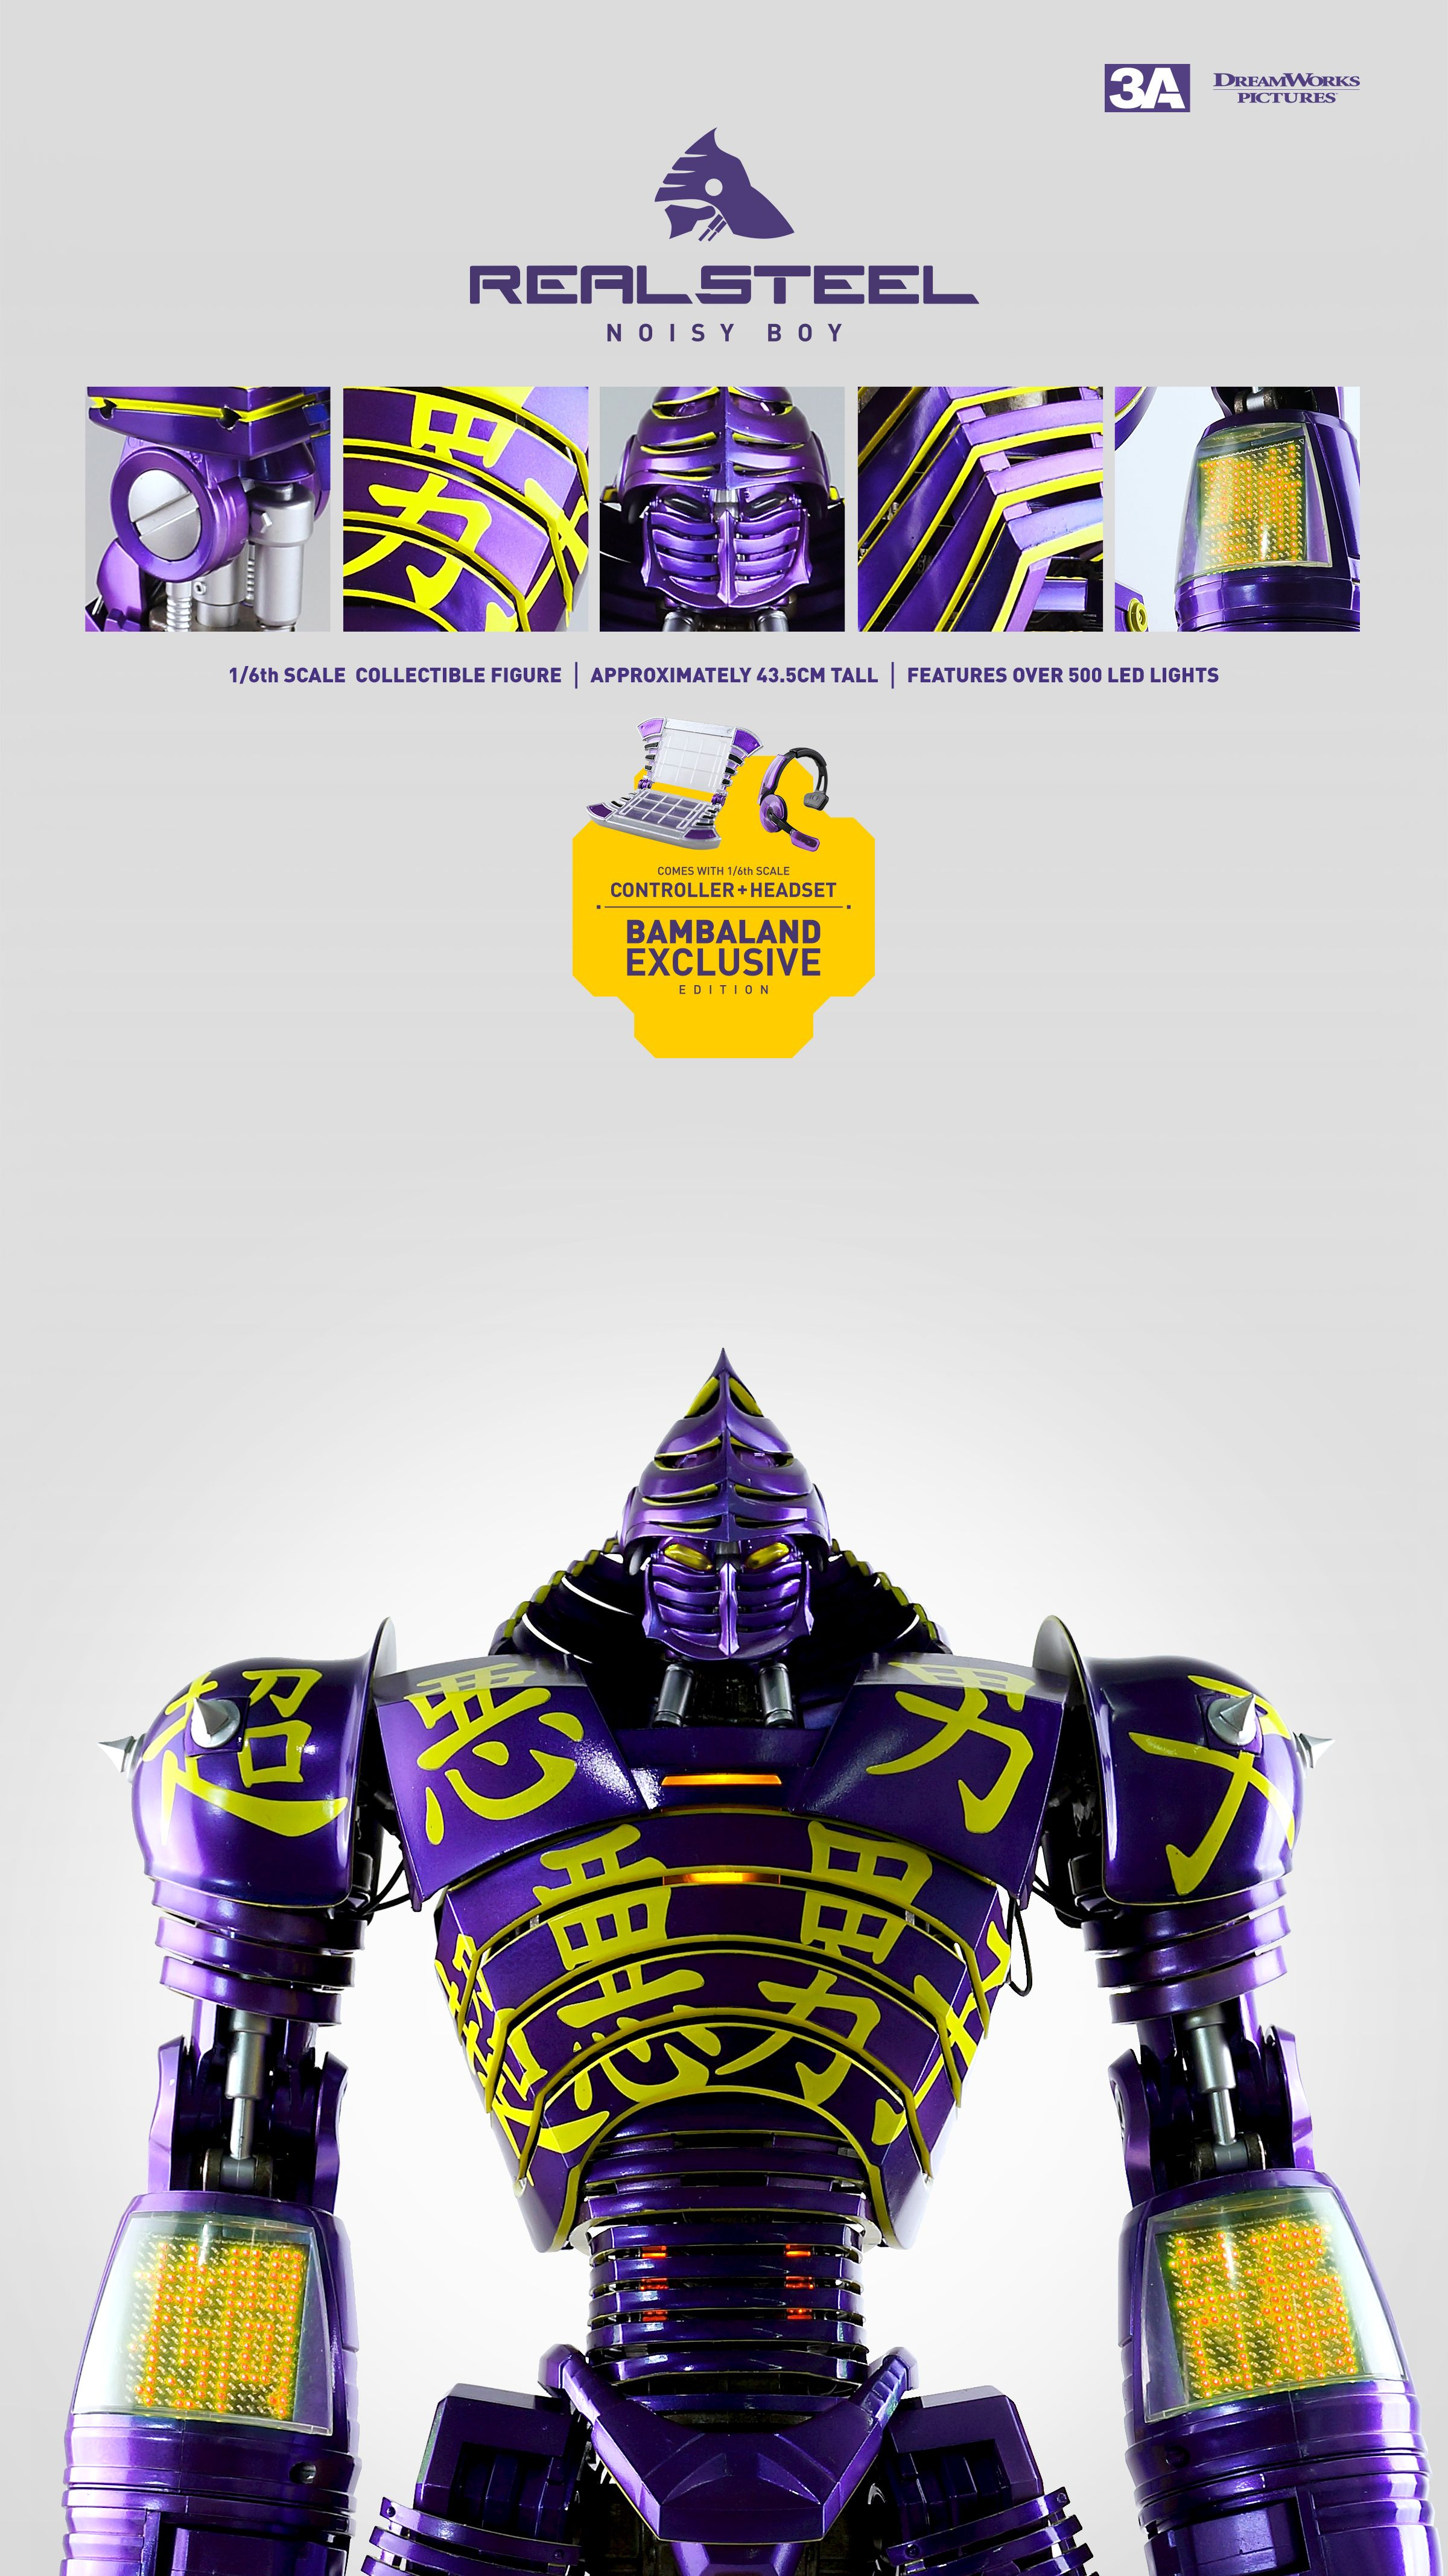 Character Design Hong Kong : Our fourth figure from real steel movie license noisy boy